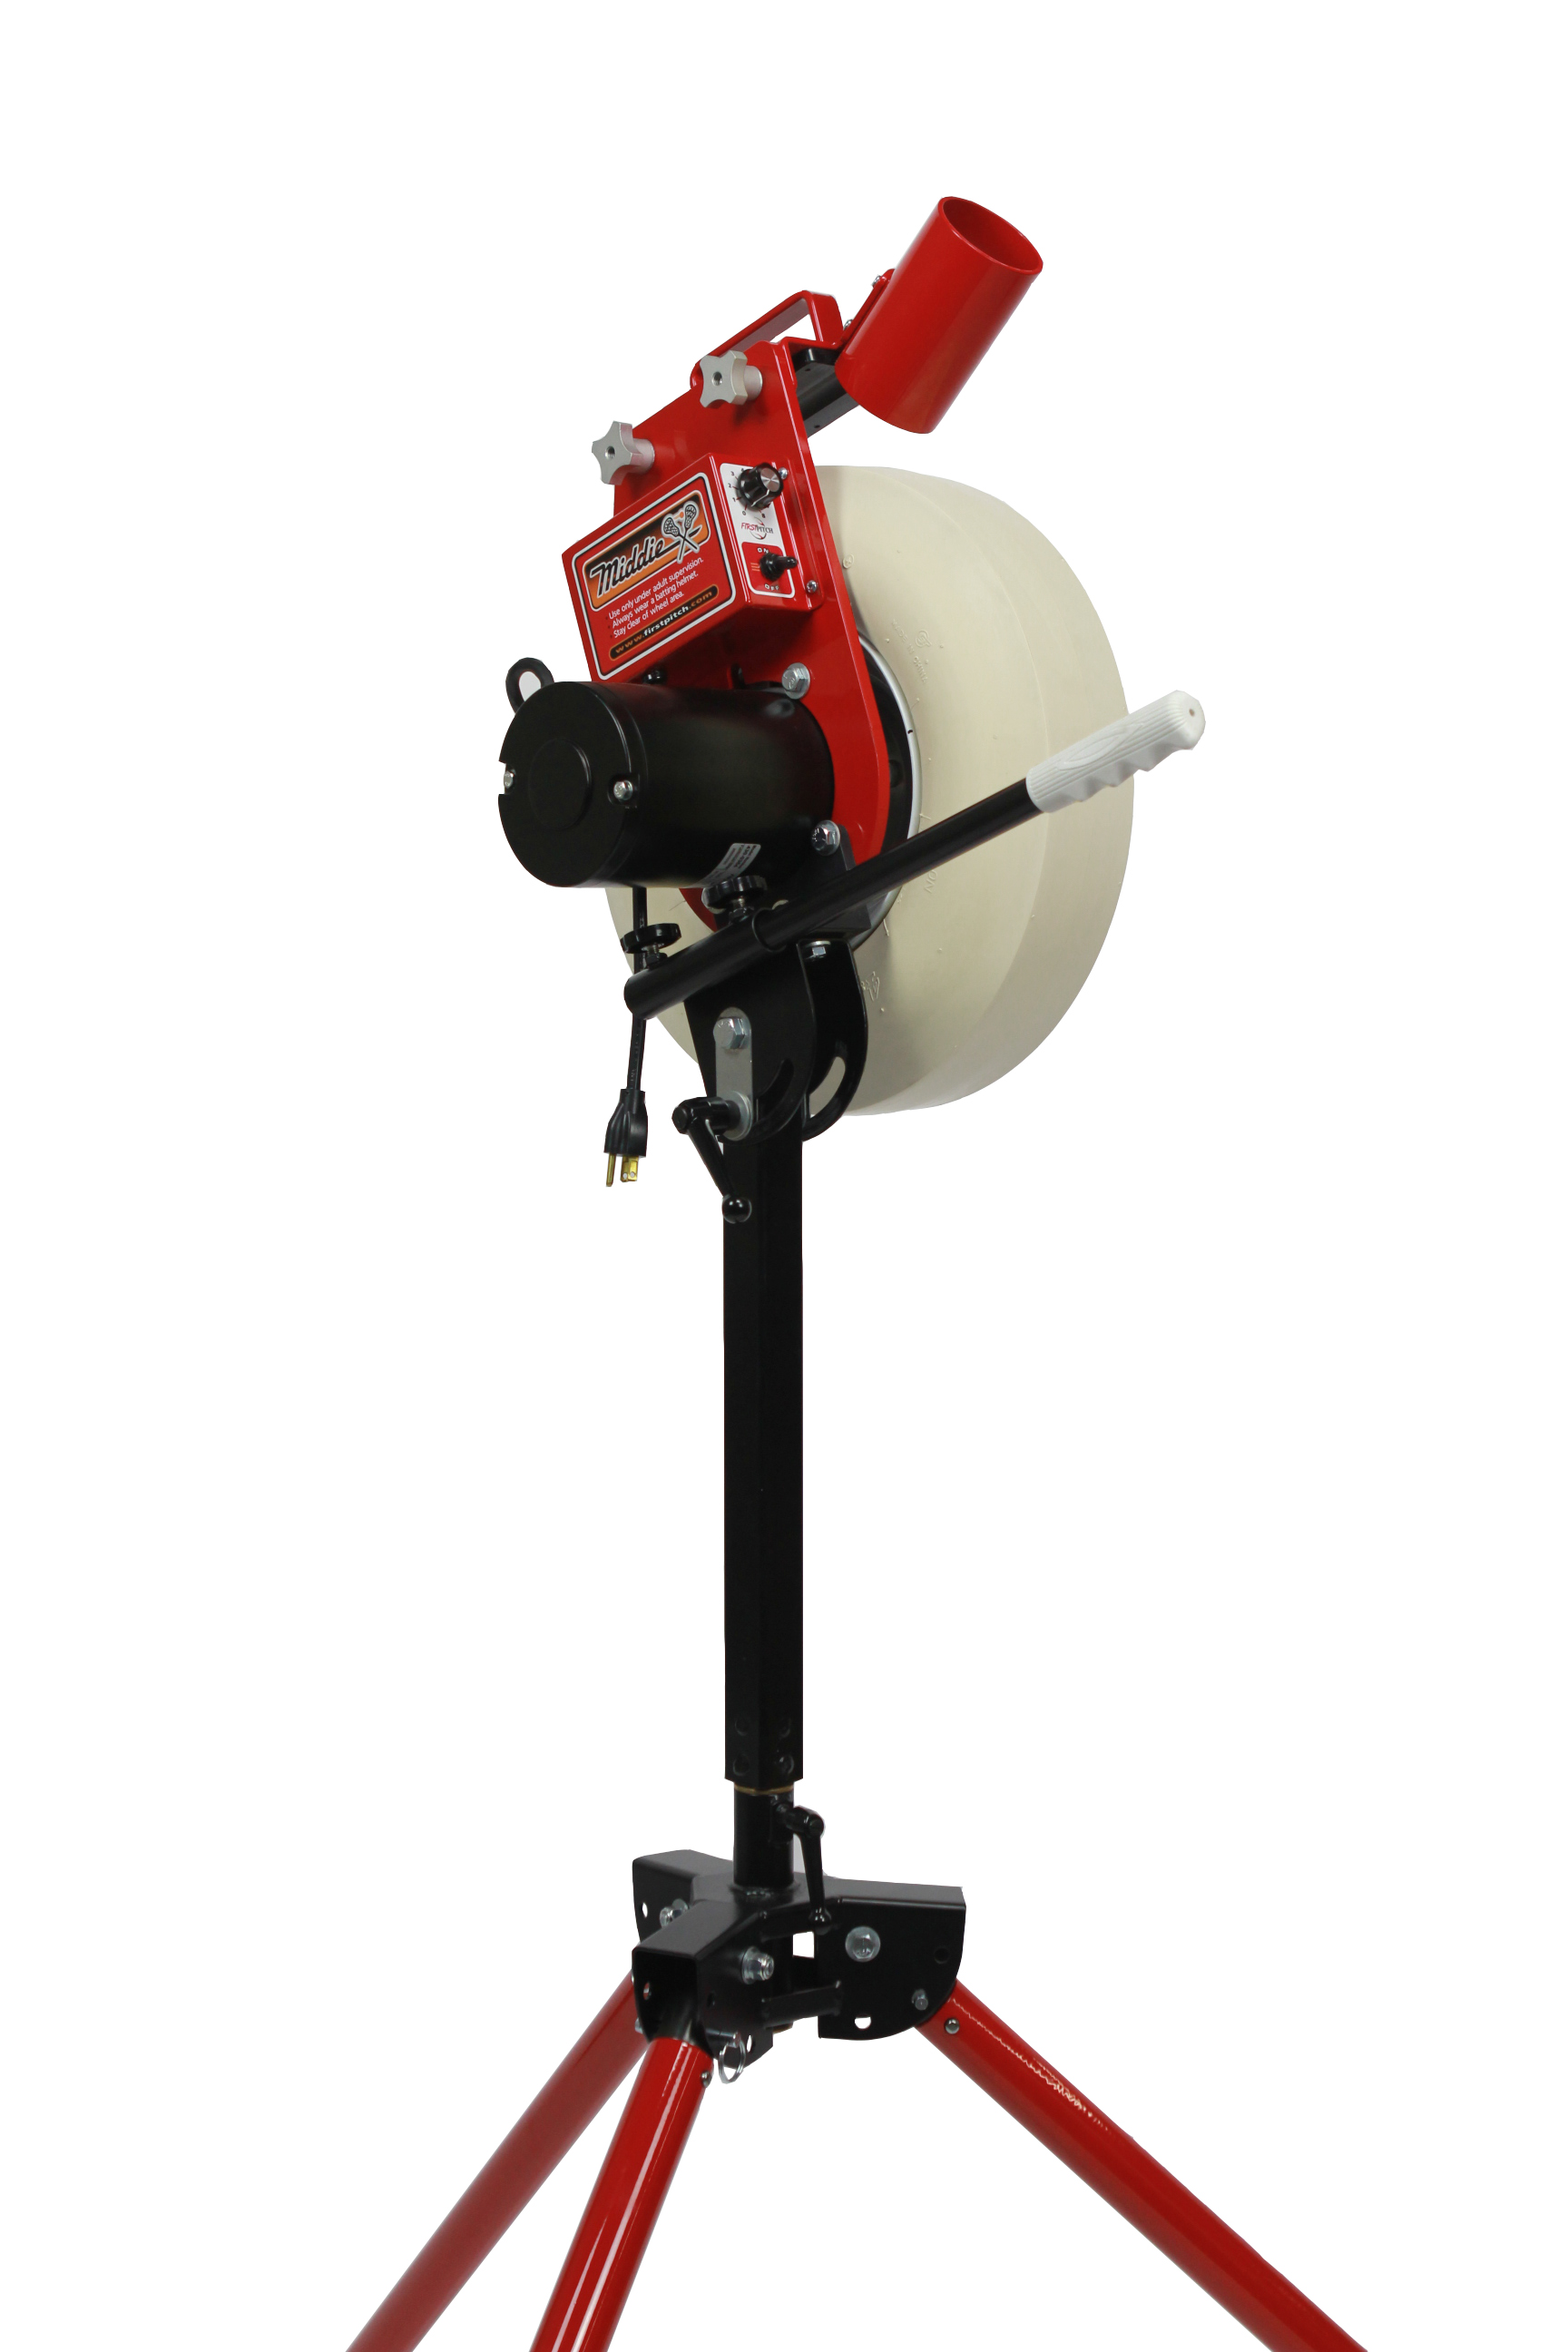 Middie - First Pitch   Pitching Machines   Free US Shipping